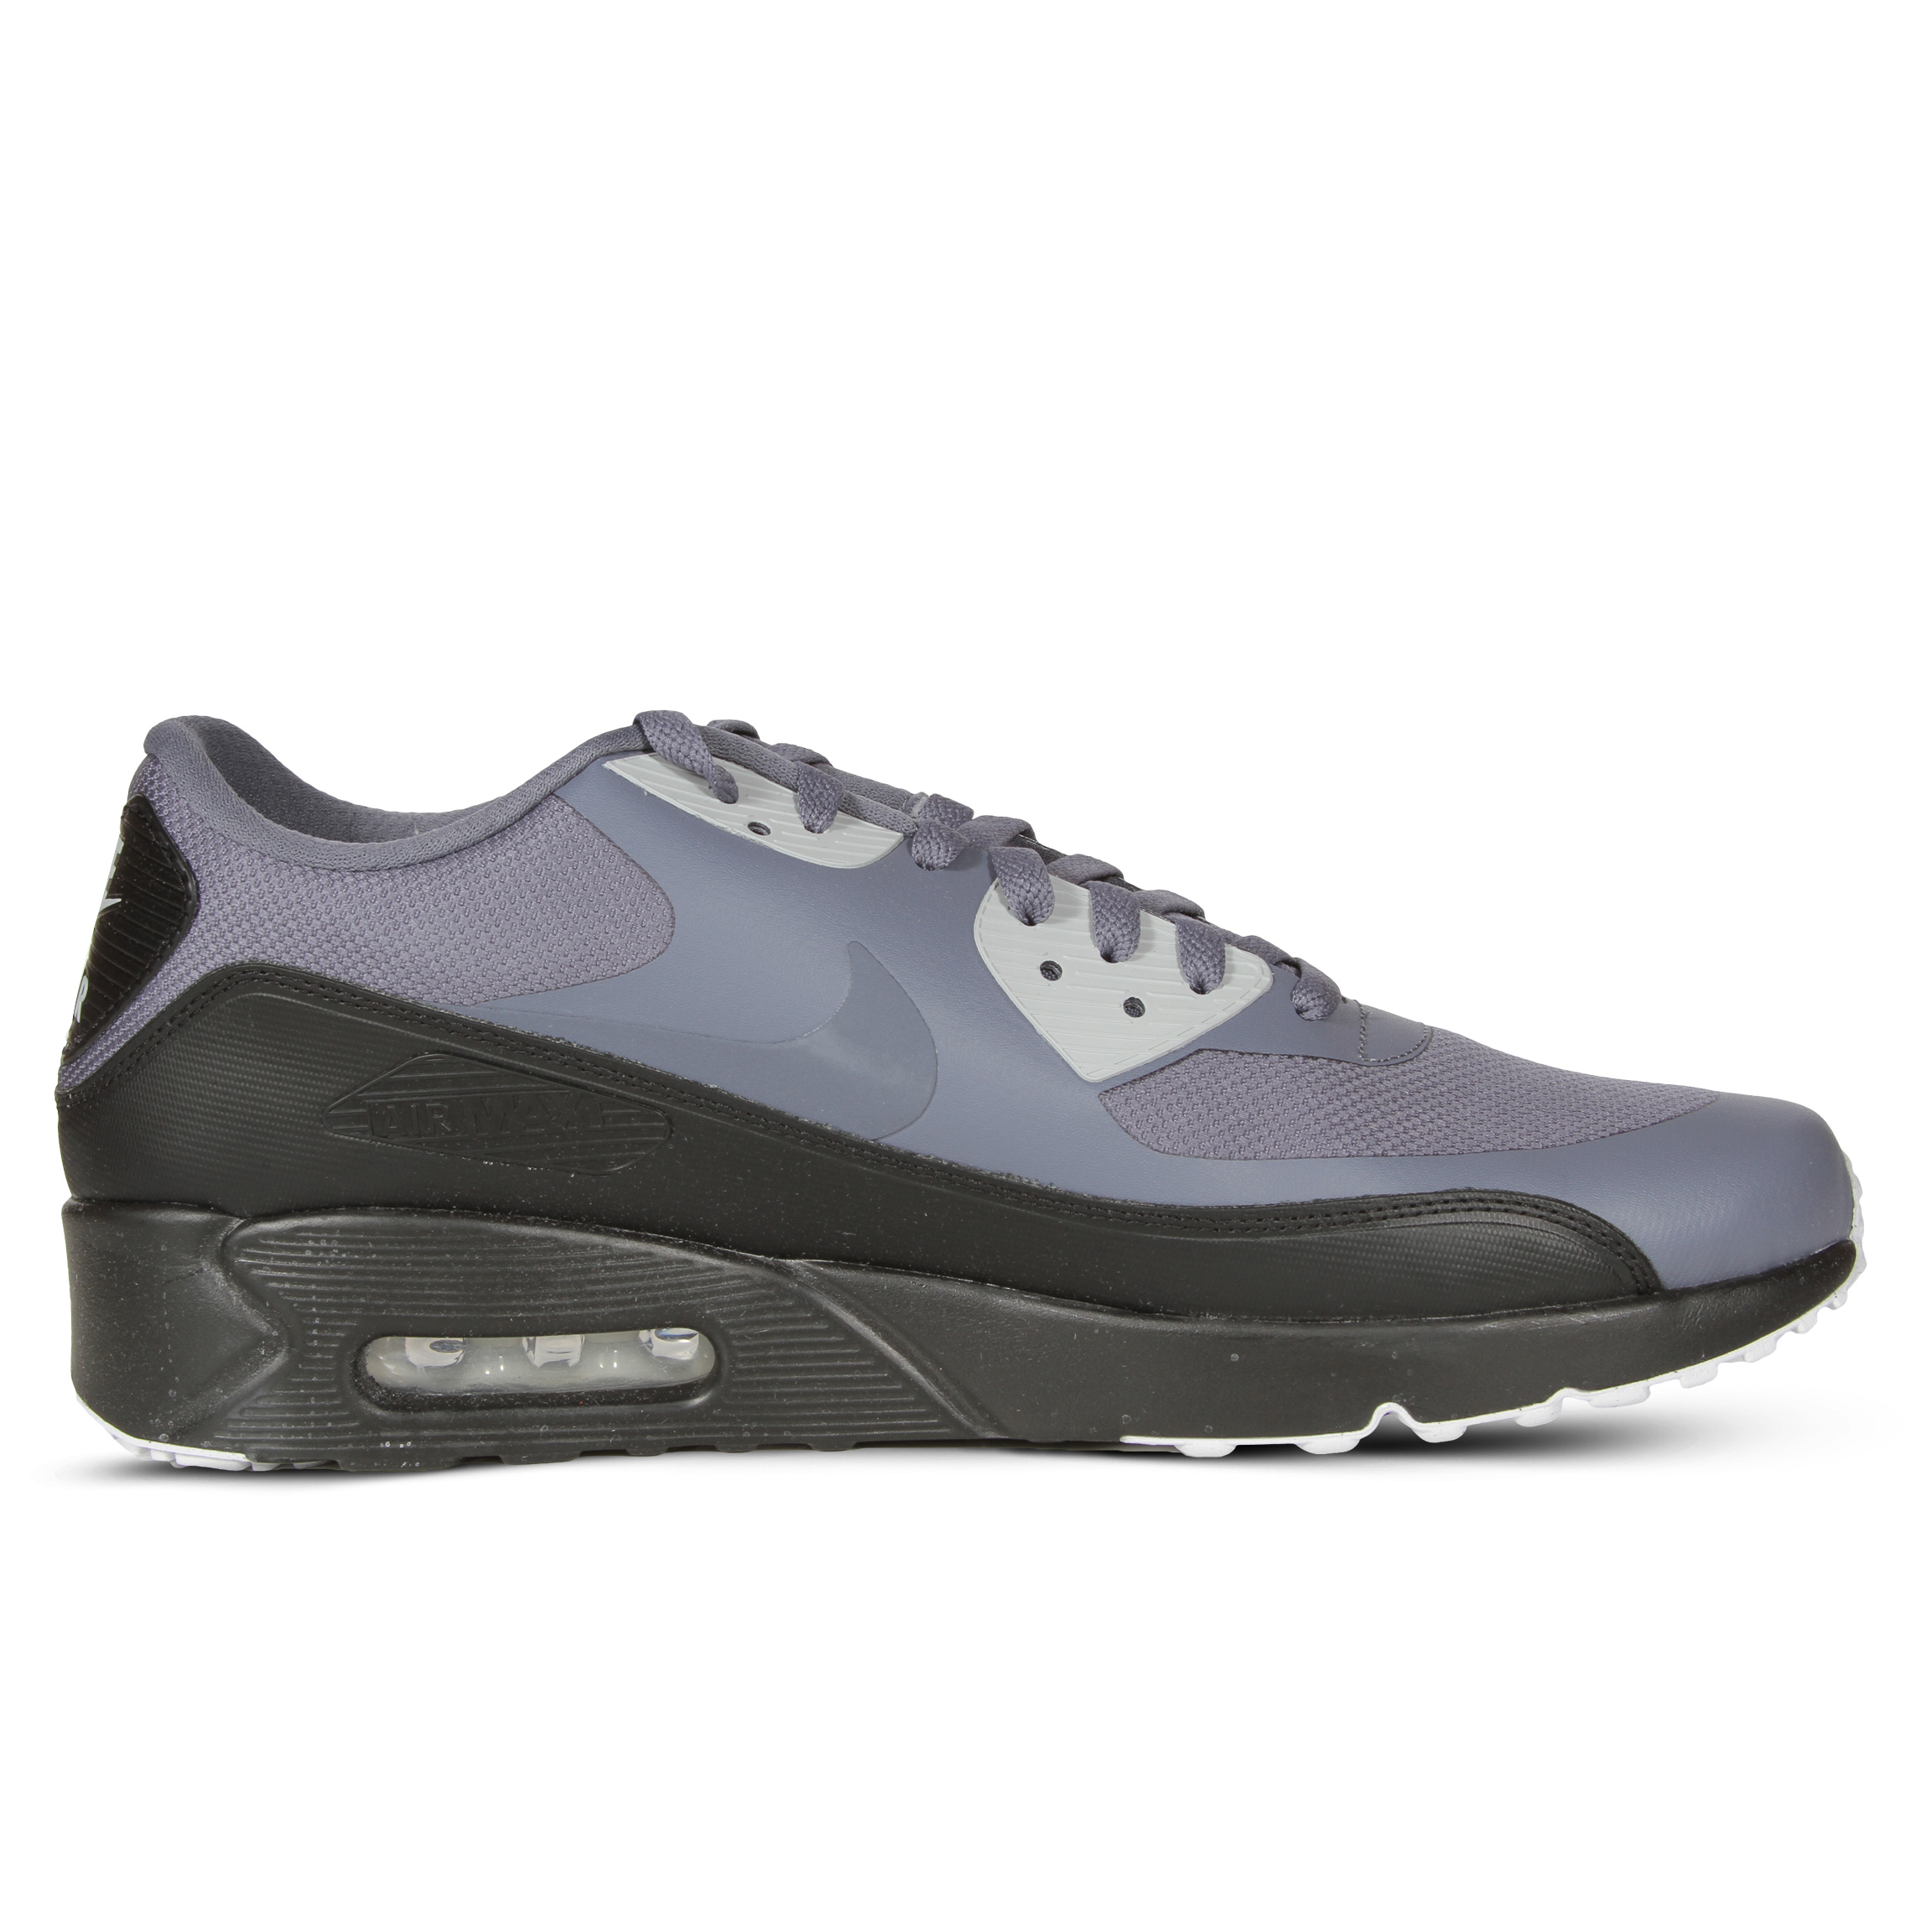 Chaussures De Nike Air Course Des Indispensable Ultra Hommes 90 Max xAY7Z8wqYa